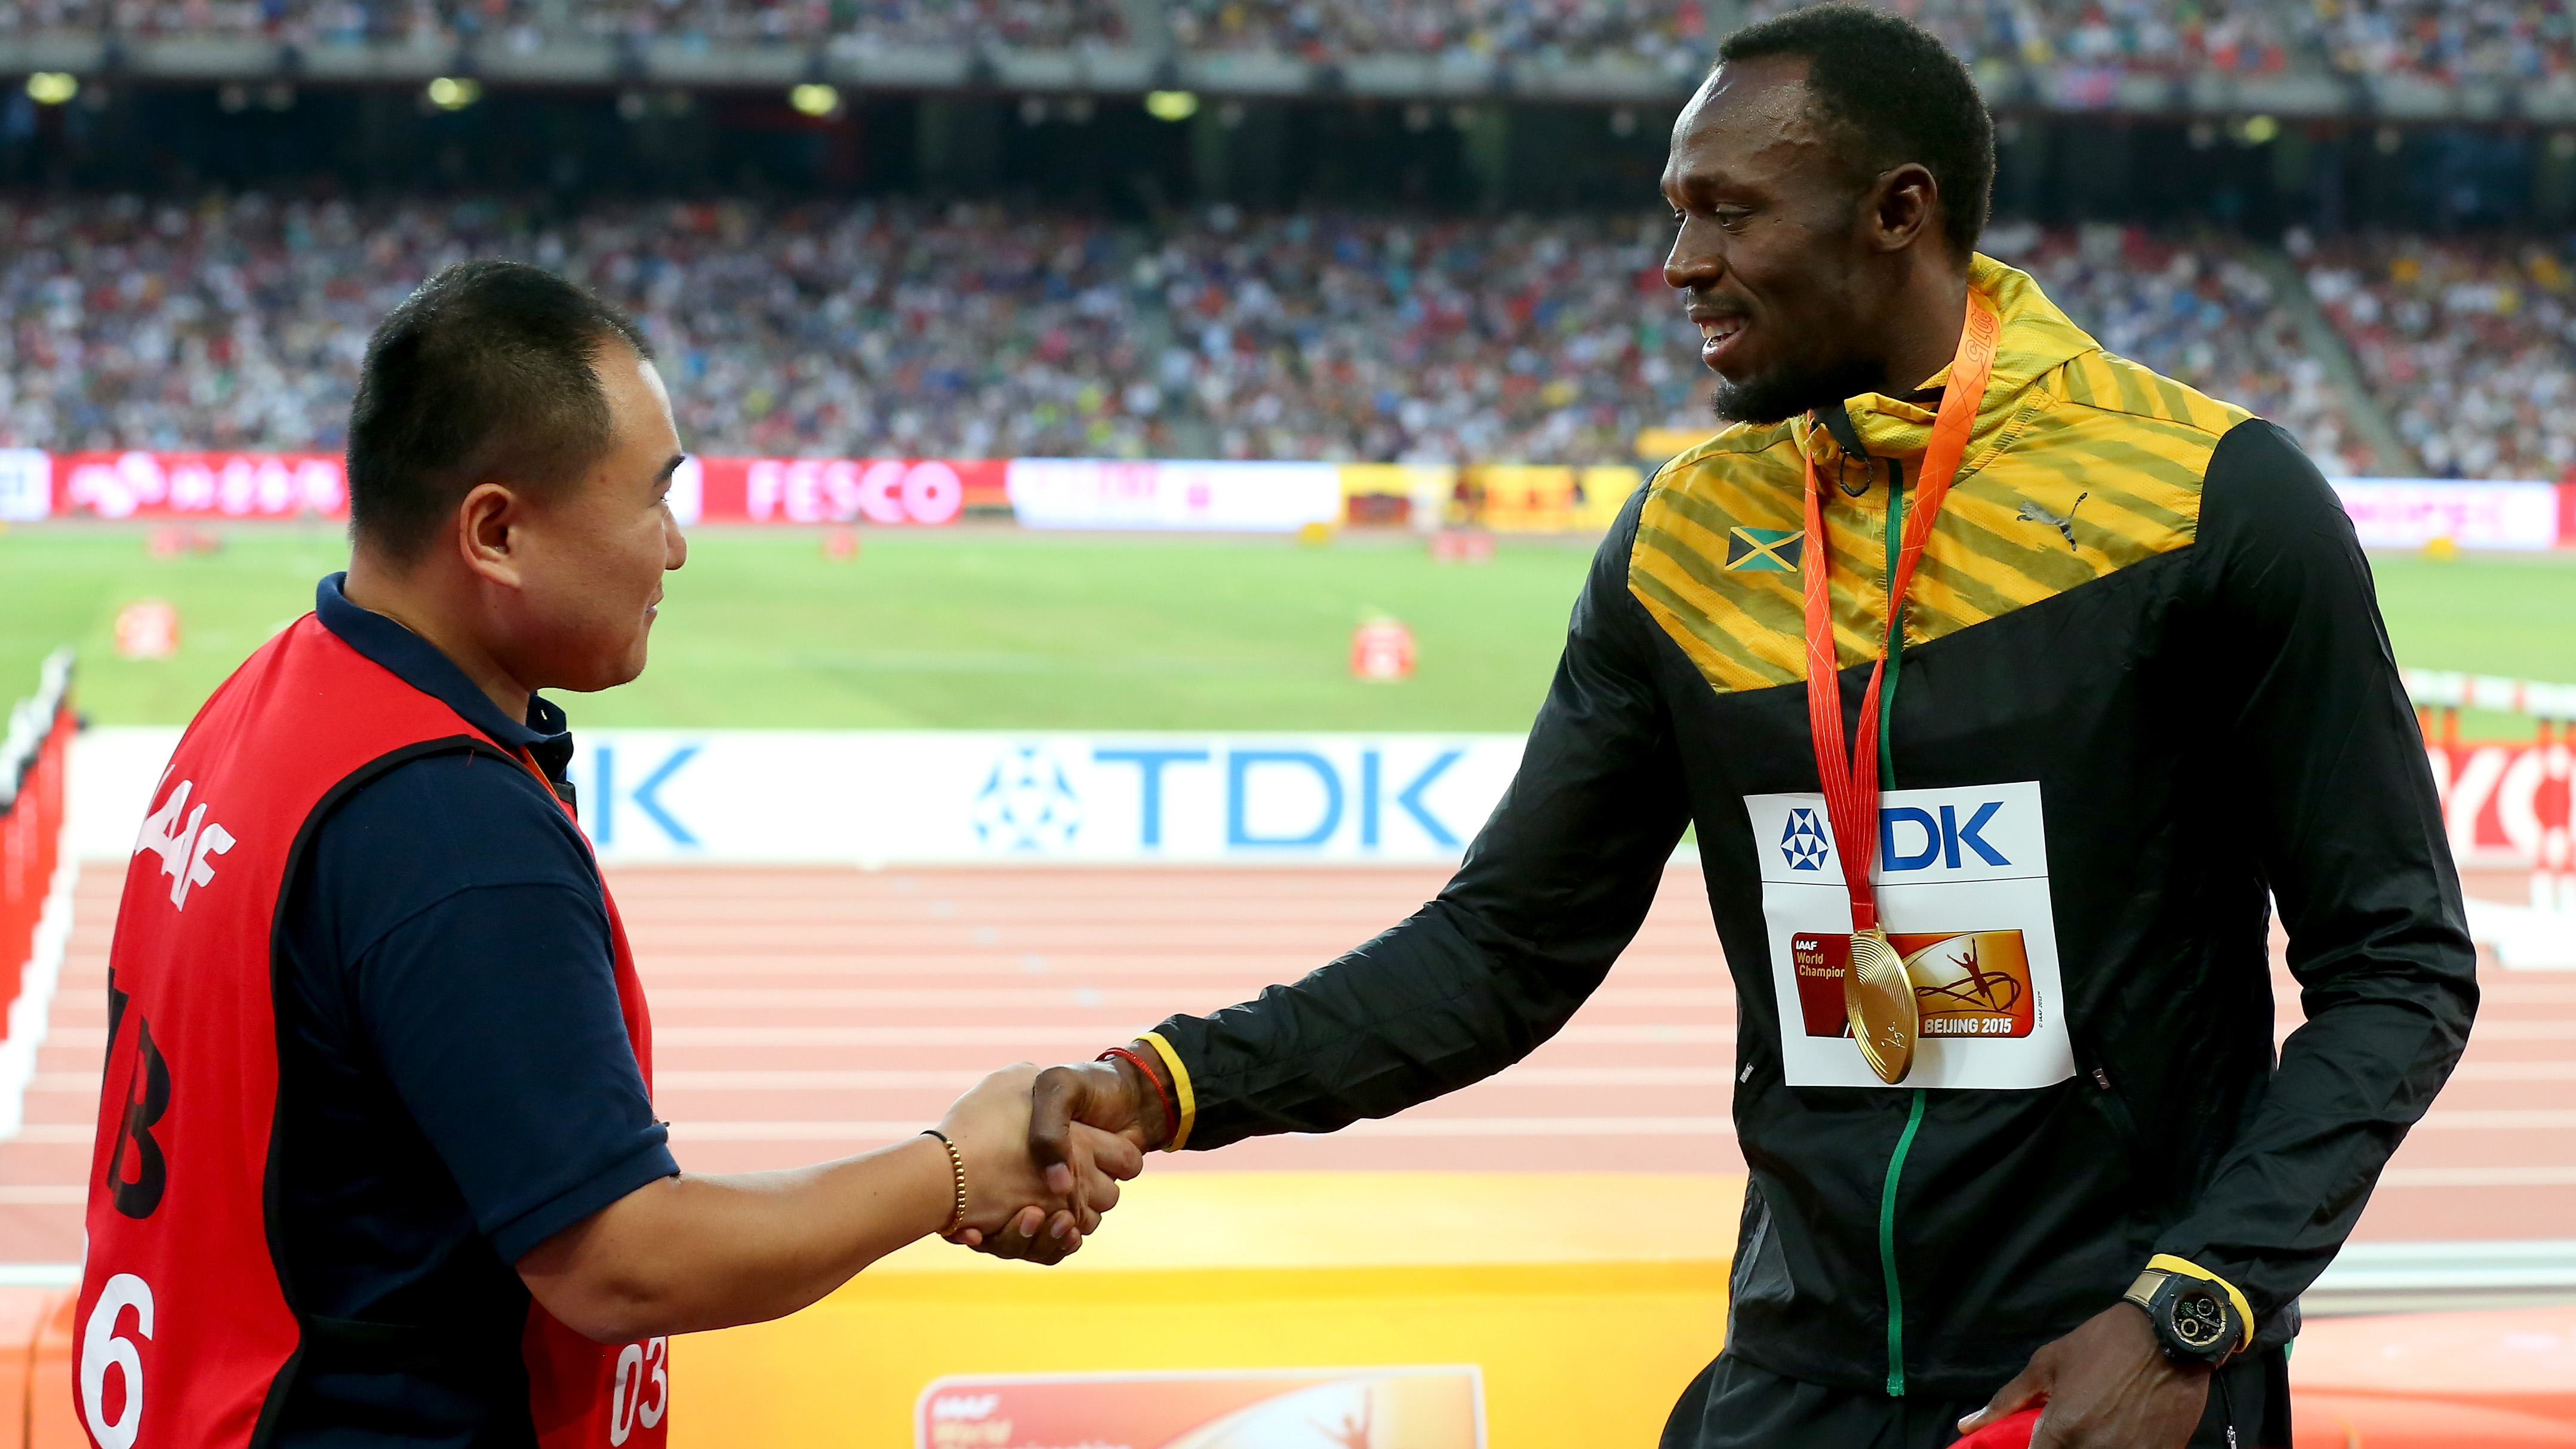 Tao Song and Usain Bolt